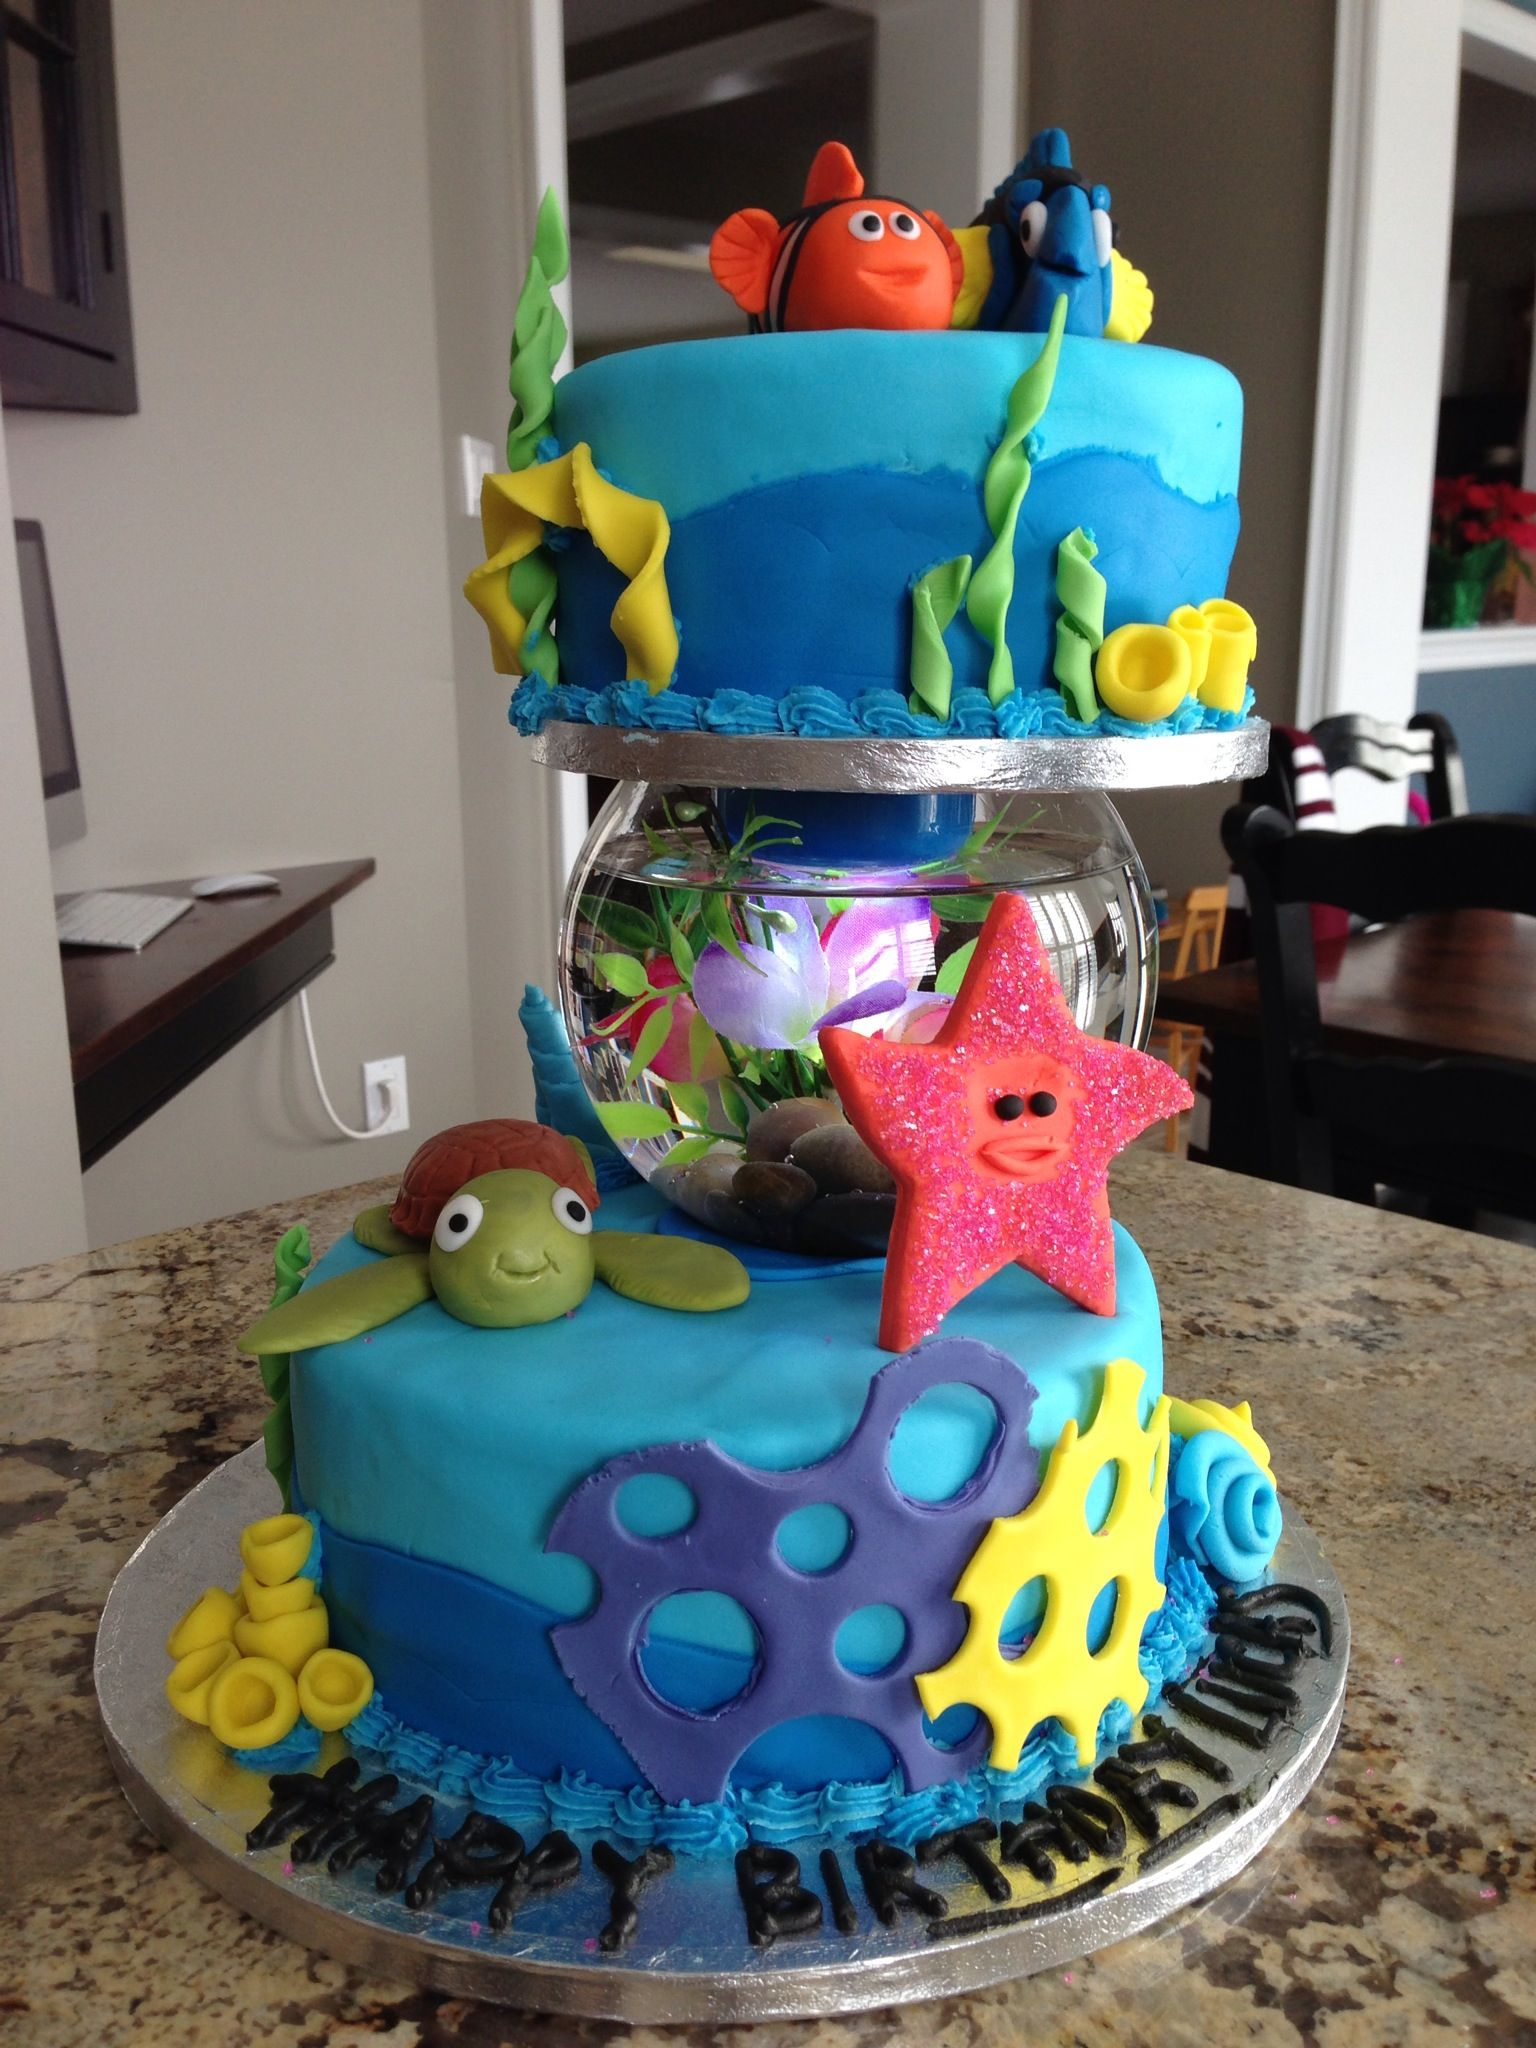 Finding Nemo Cake With Fish Bowl And Light Feature Nemo Birthday